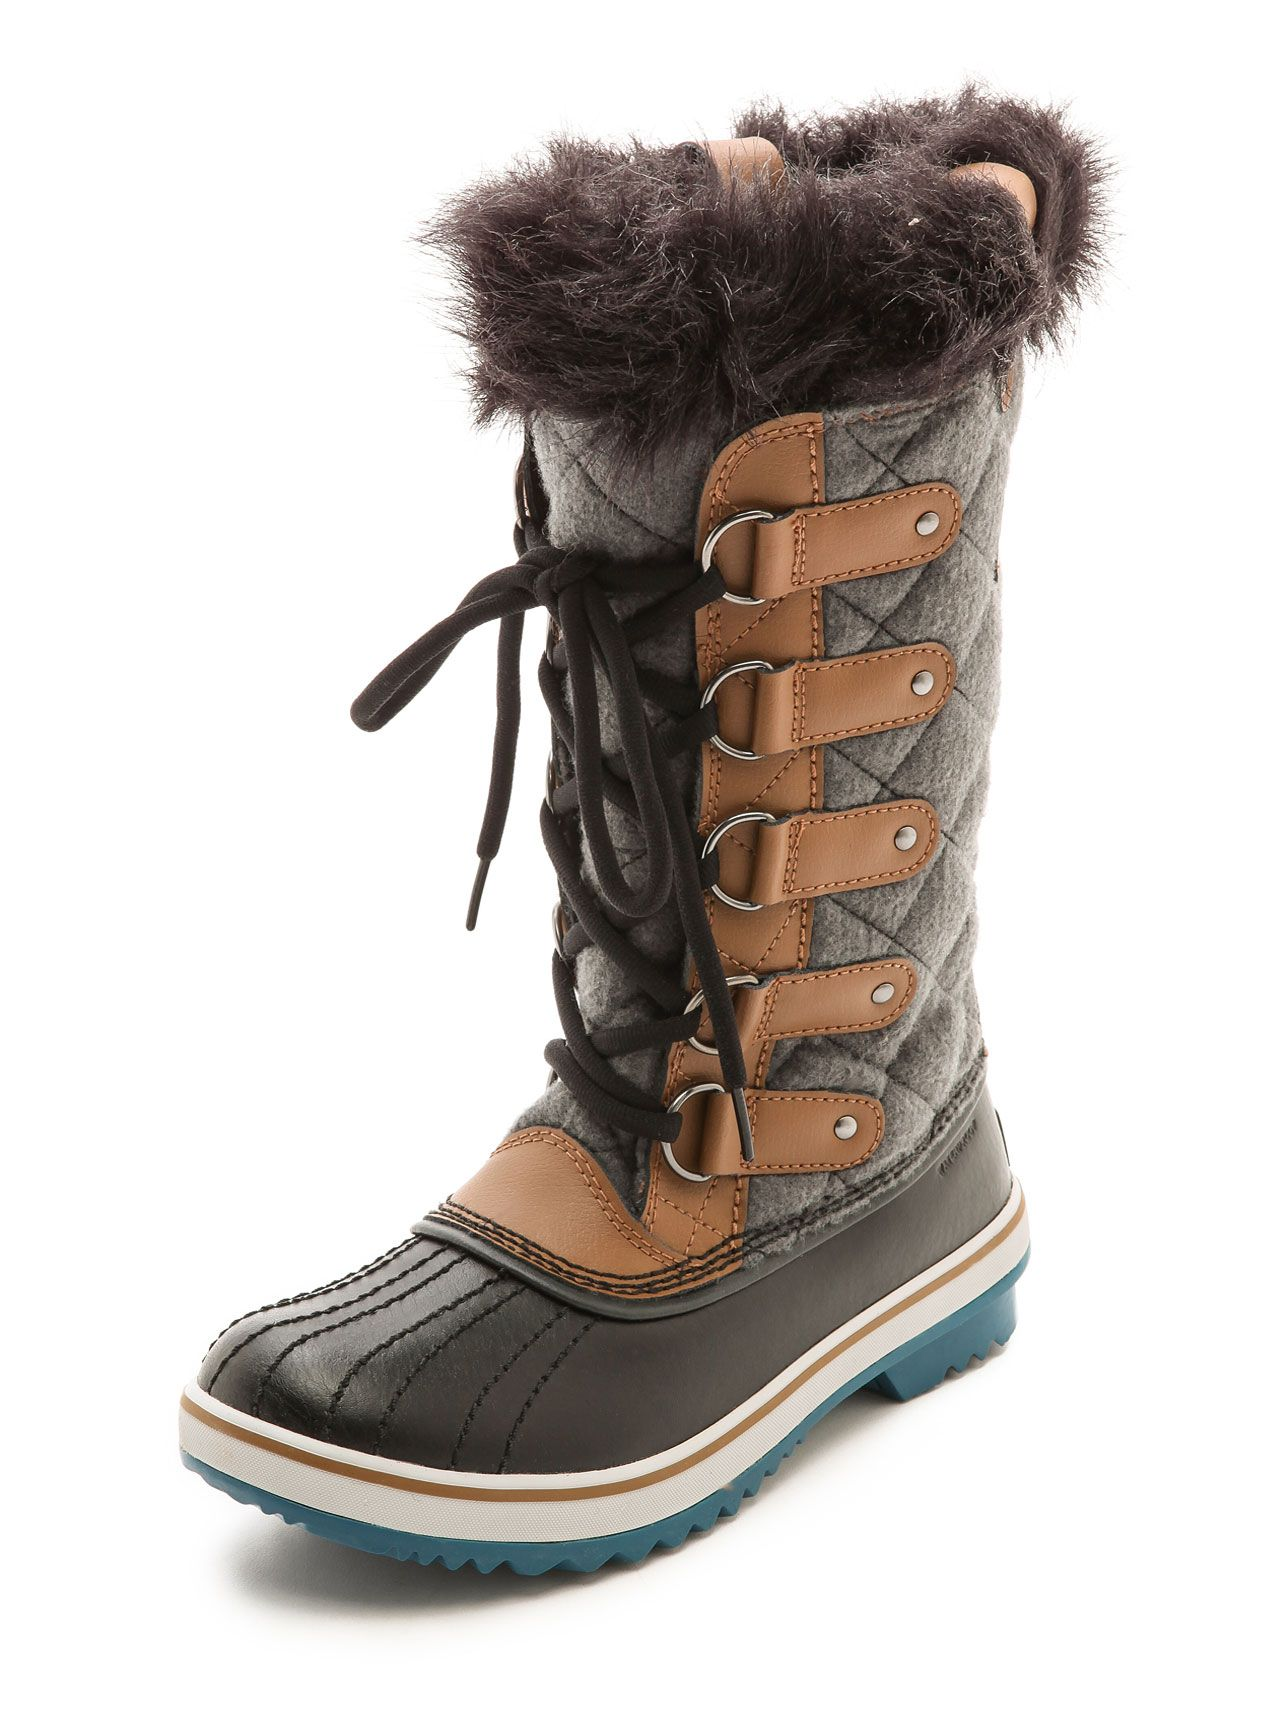 305e1e2a060 3 Fail-Proof Outfits for Every Type of Ski Resort. Sorel Tofino Faux Fur  Lined Boots. Sorel Tofino Faux Fur Lined Boots Apres Ski Boots